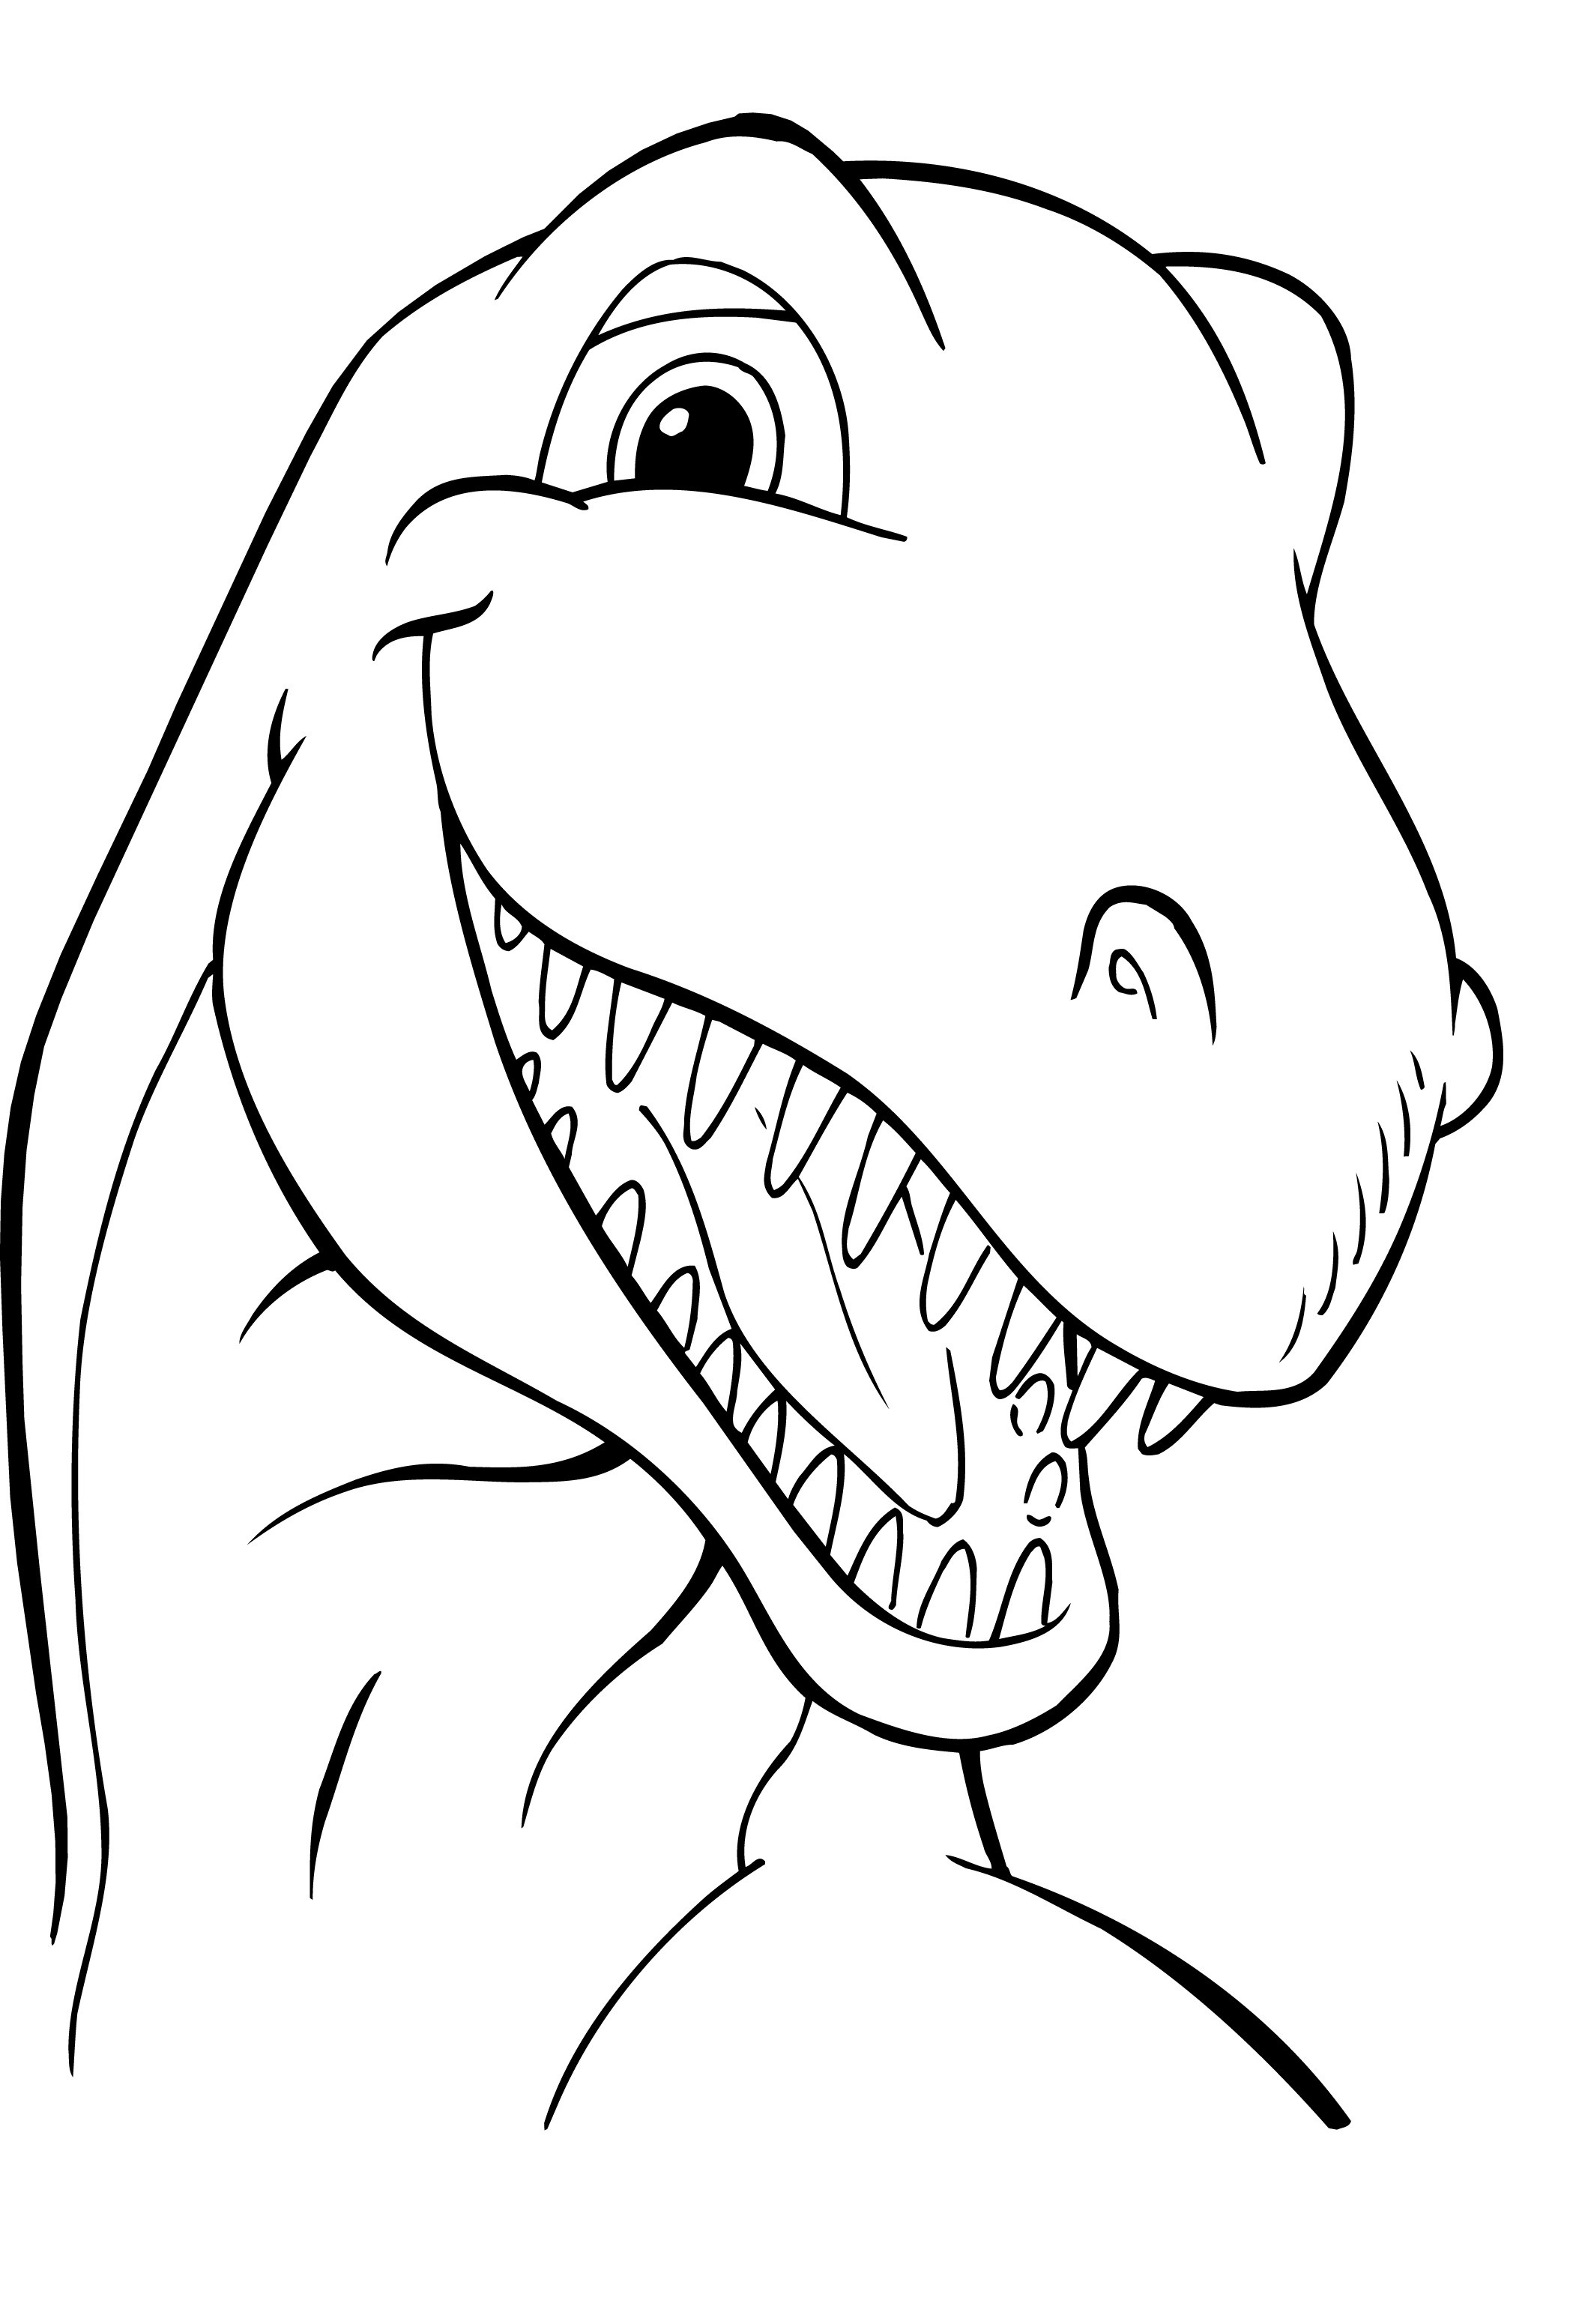 pictures of dinosaurs to print free printable triceratops coloring pages for kids to dinosaurs pictures of print